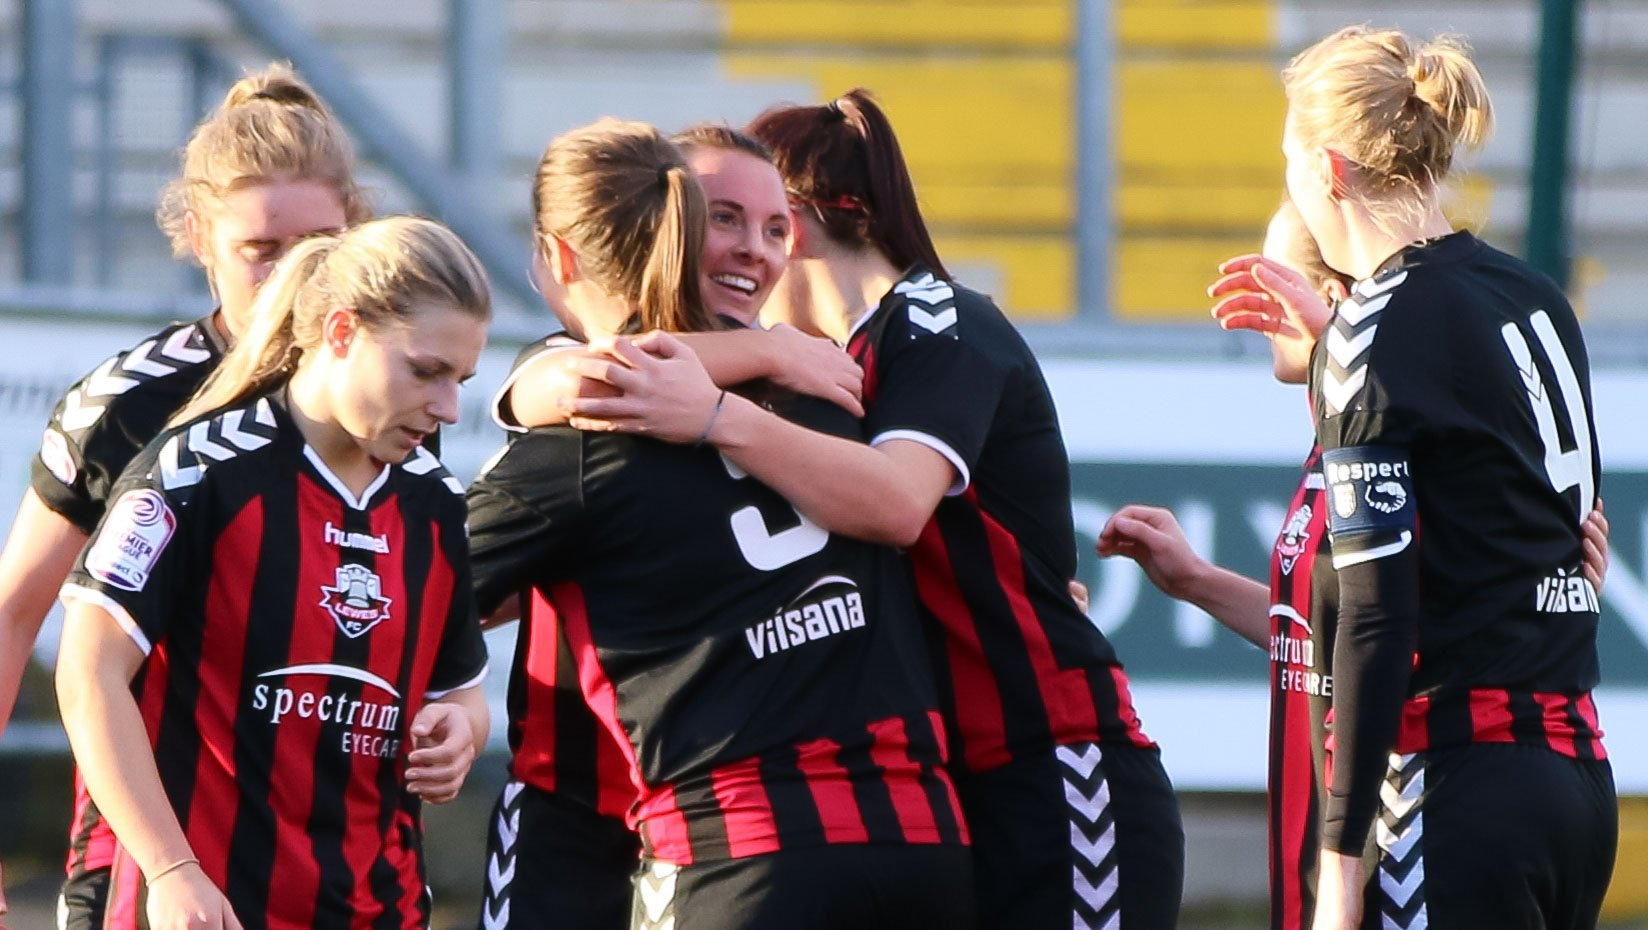 Leeta Rutherford is congratulated after scoring Lewes' second goal against Cardiff City, Jan 8 2017 (Photo: James Boyes)